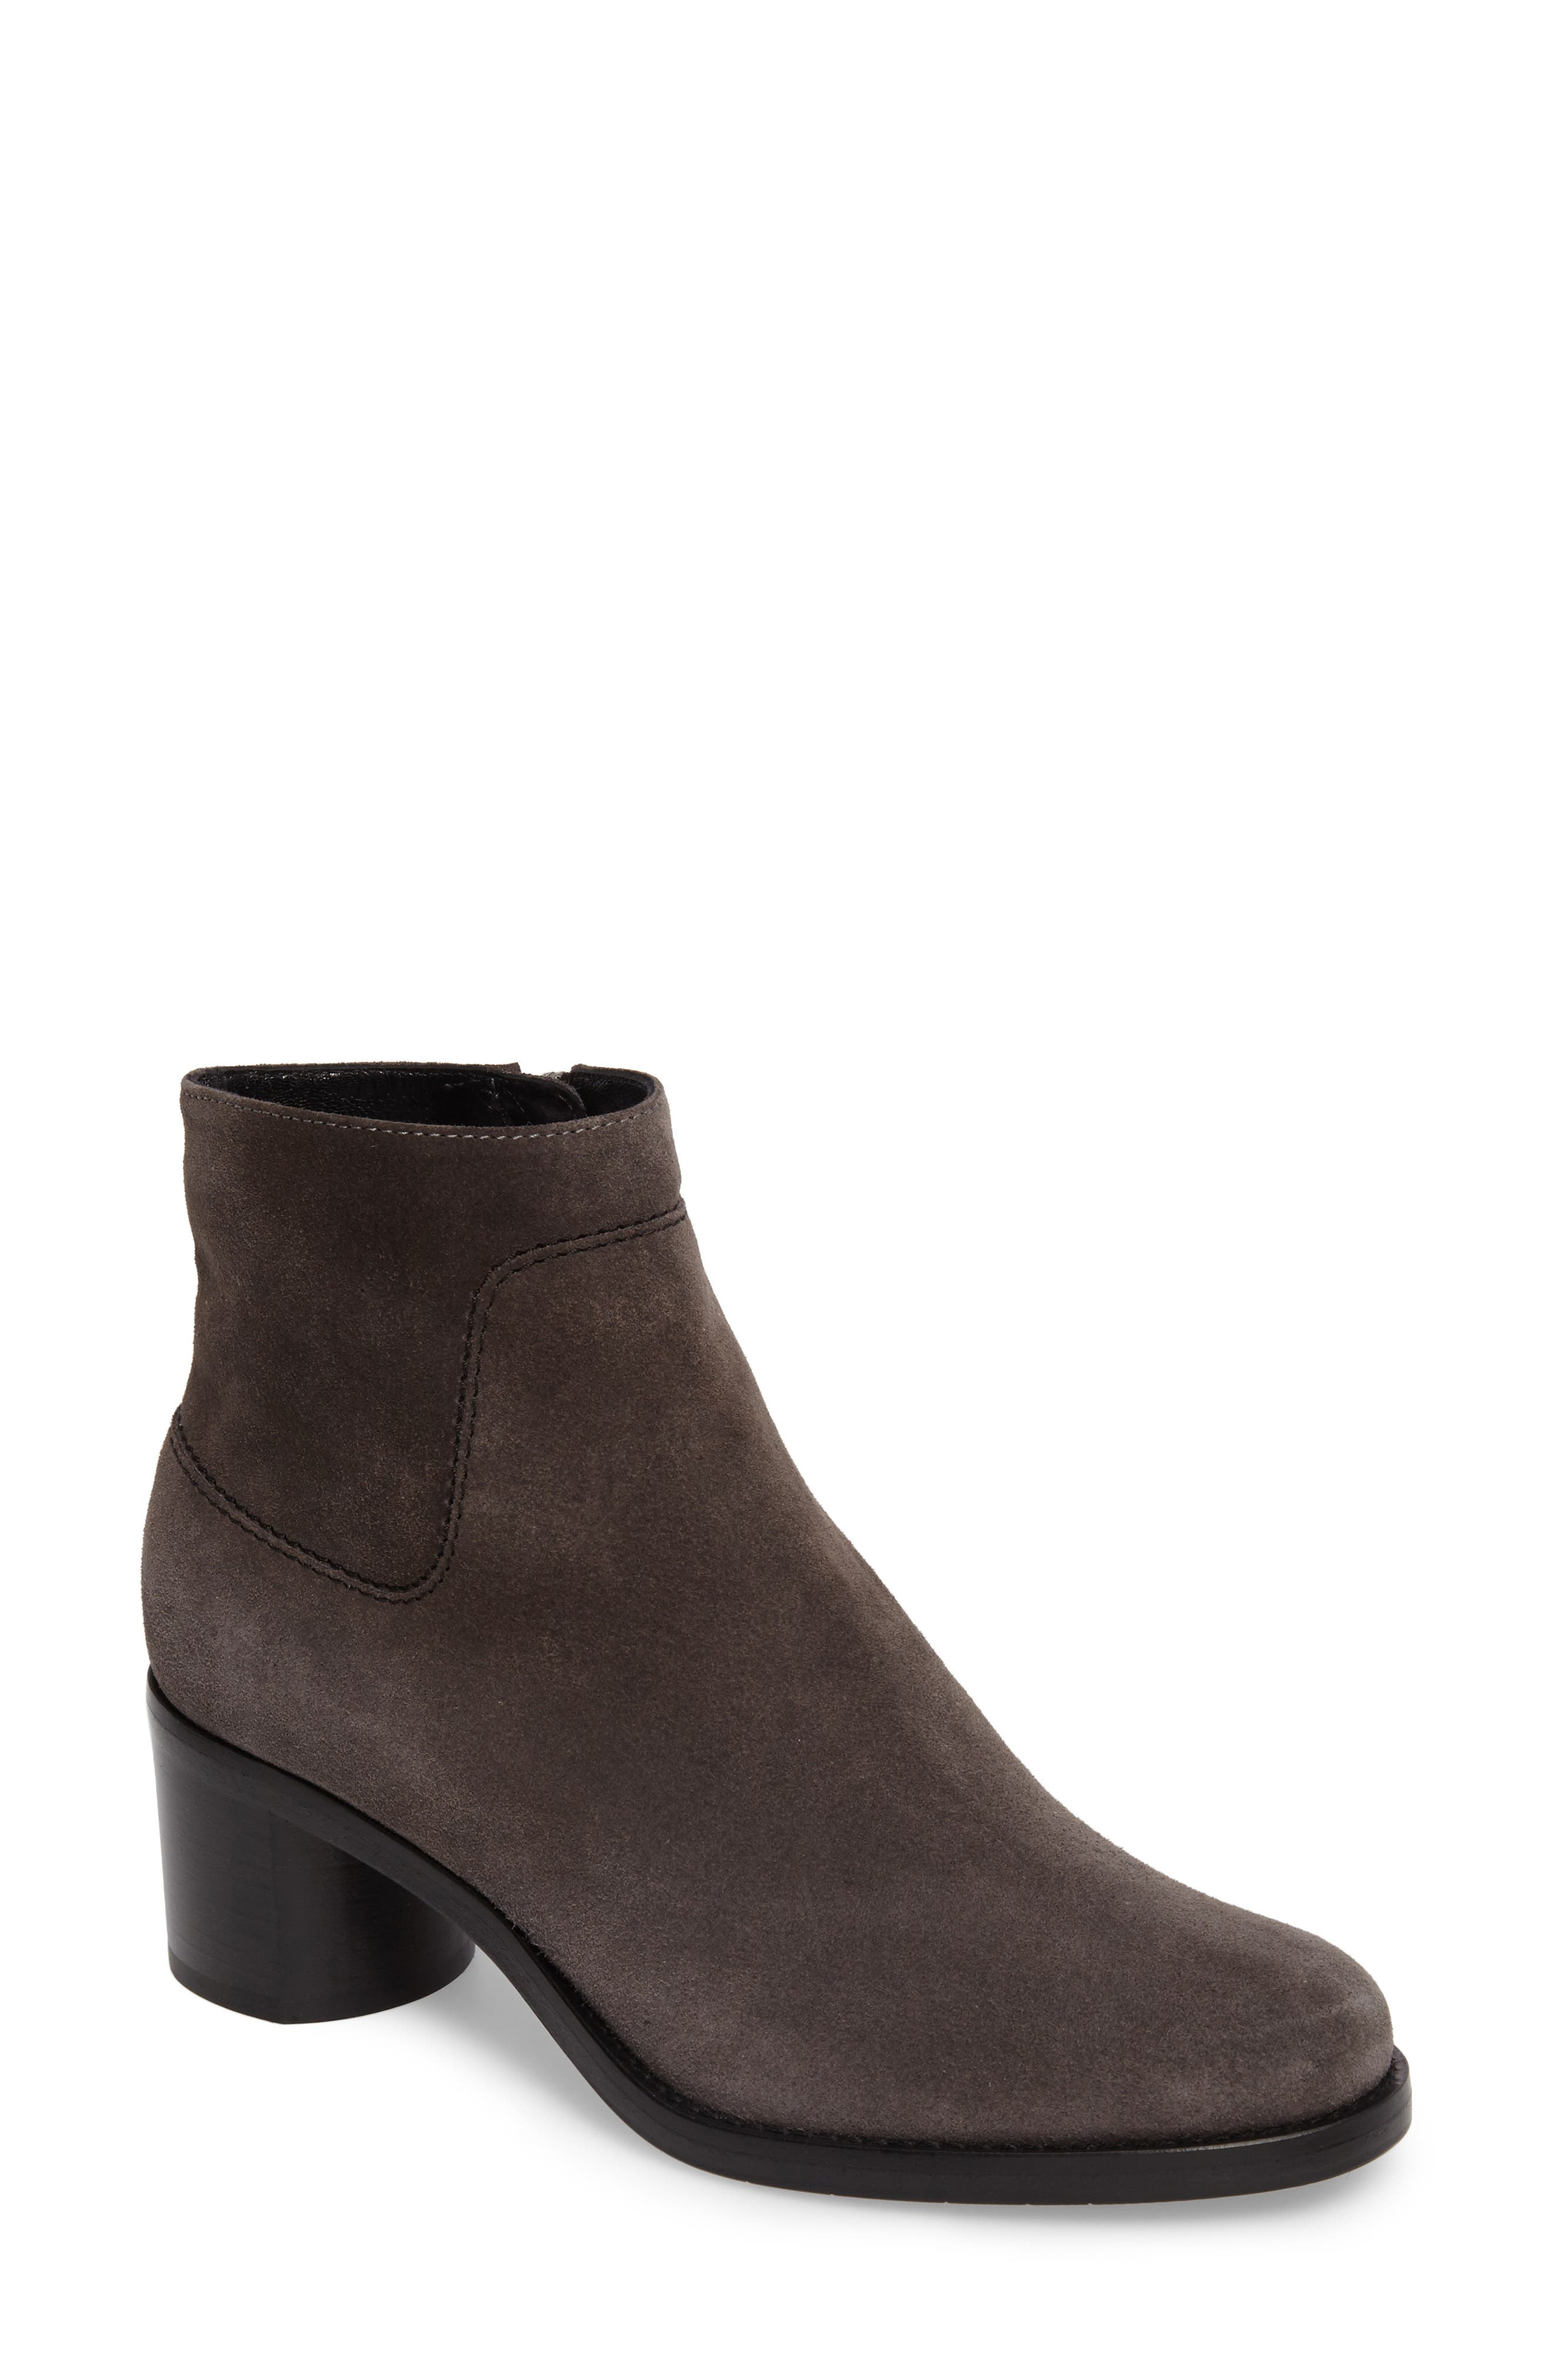 Alternate Image 1 Selected - Aquatalia Tilda Weatherproof Bootie (Women)